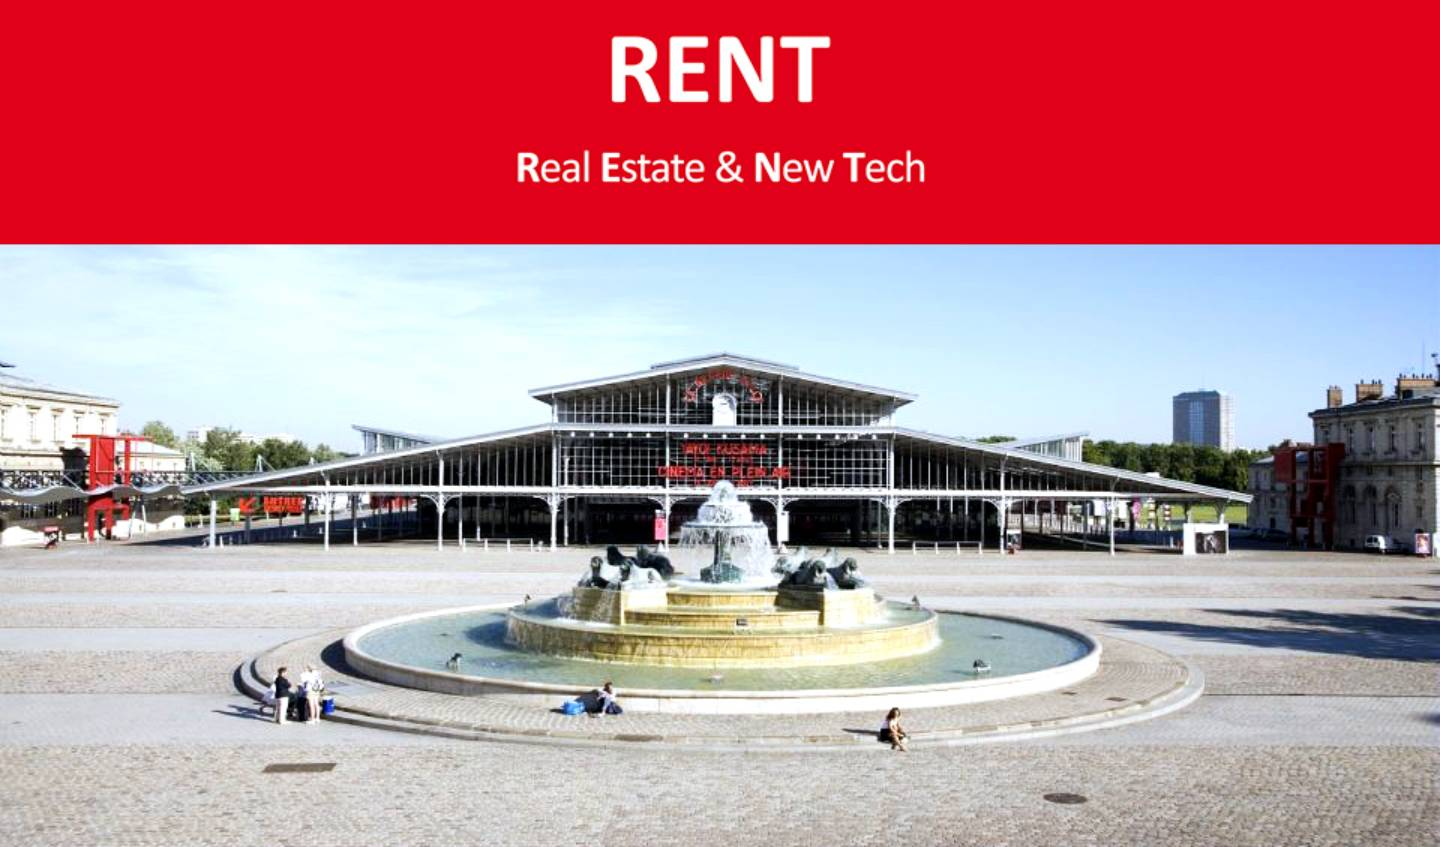 Photo de la Gande Halle de la Villette où avait lieu le salon RENT